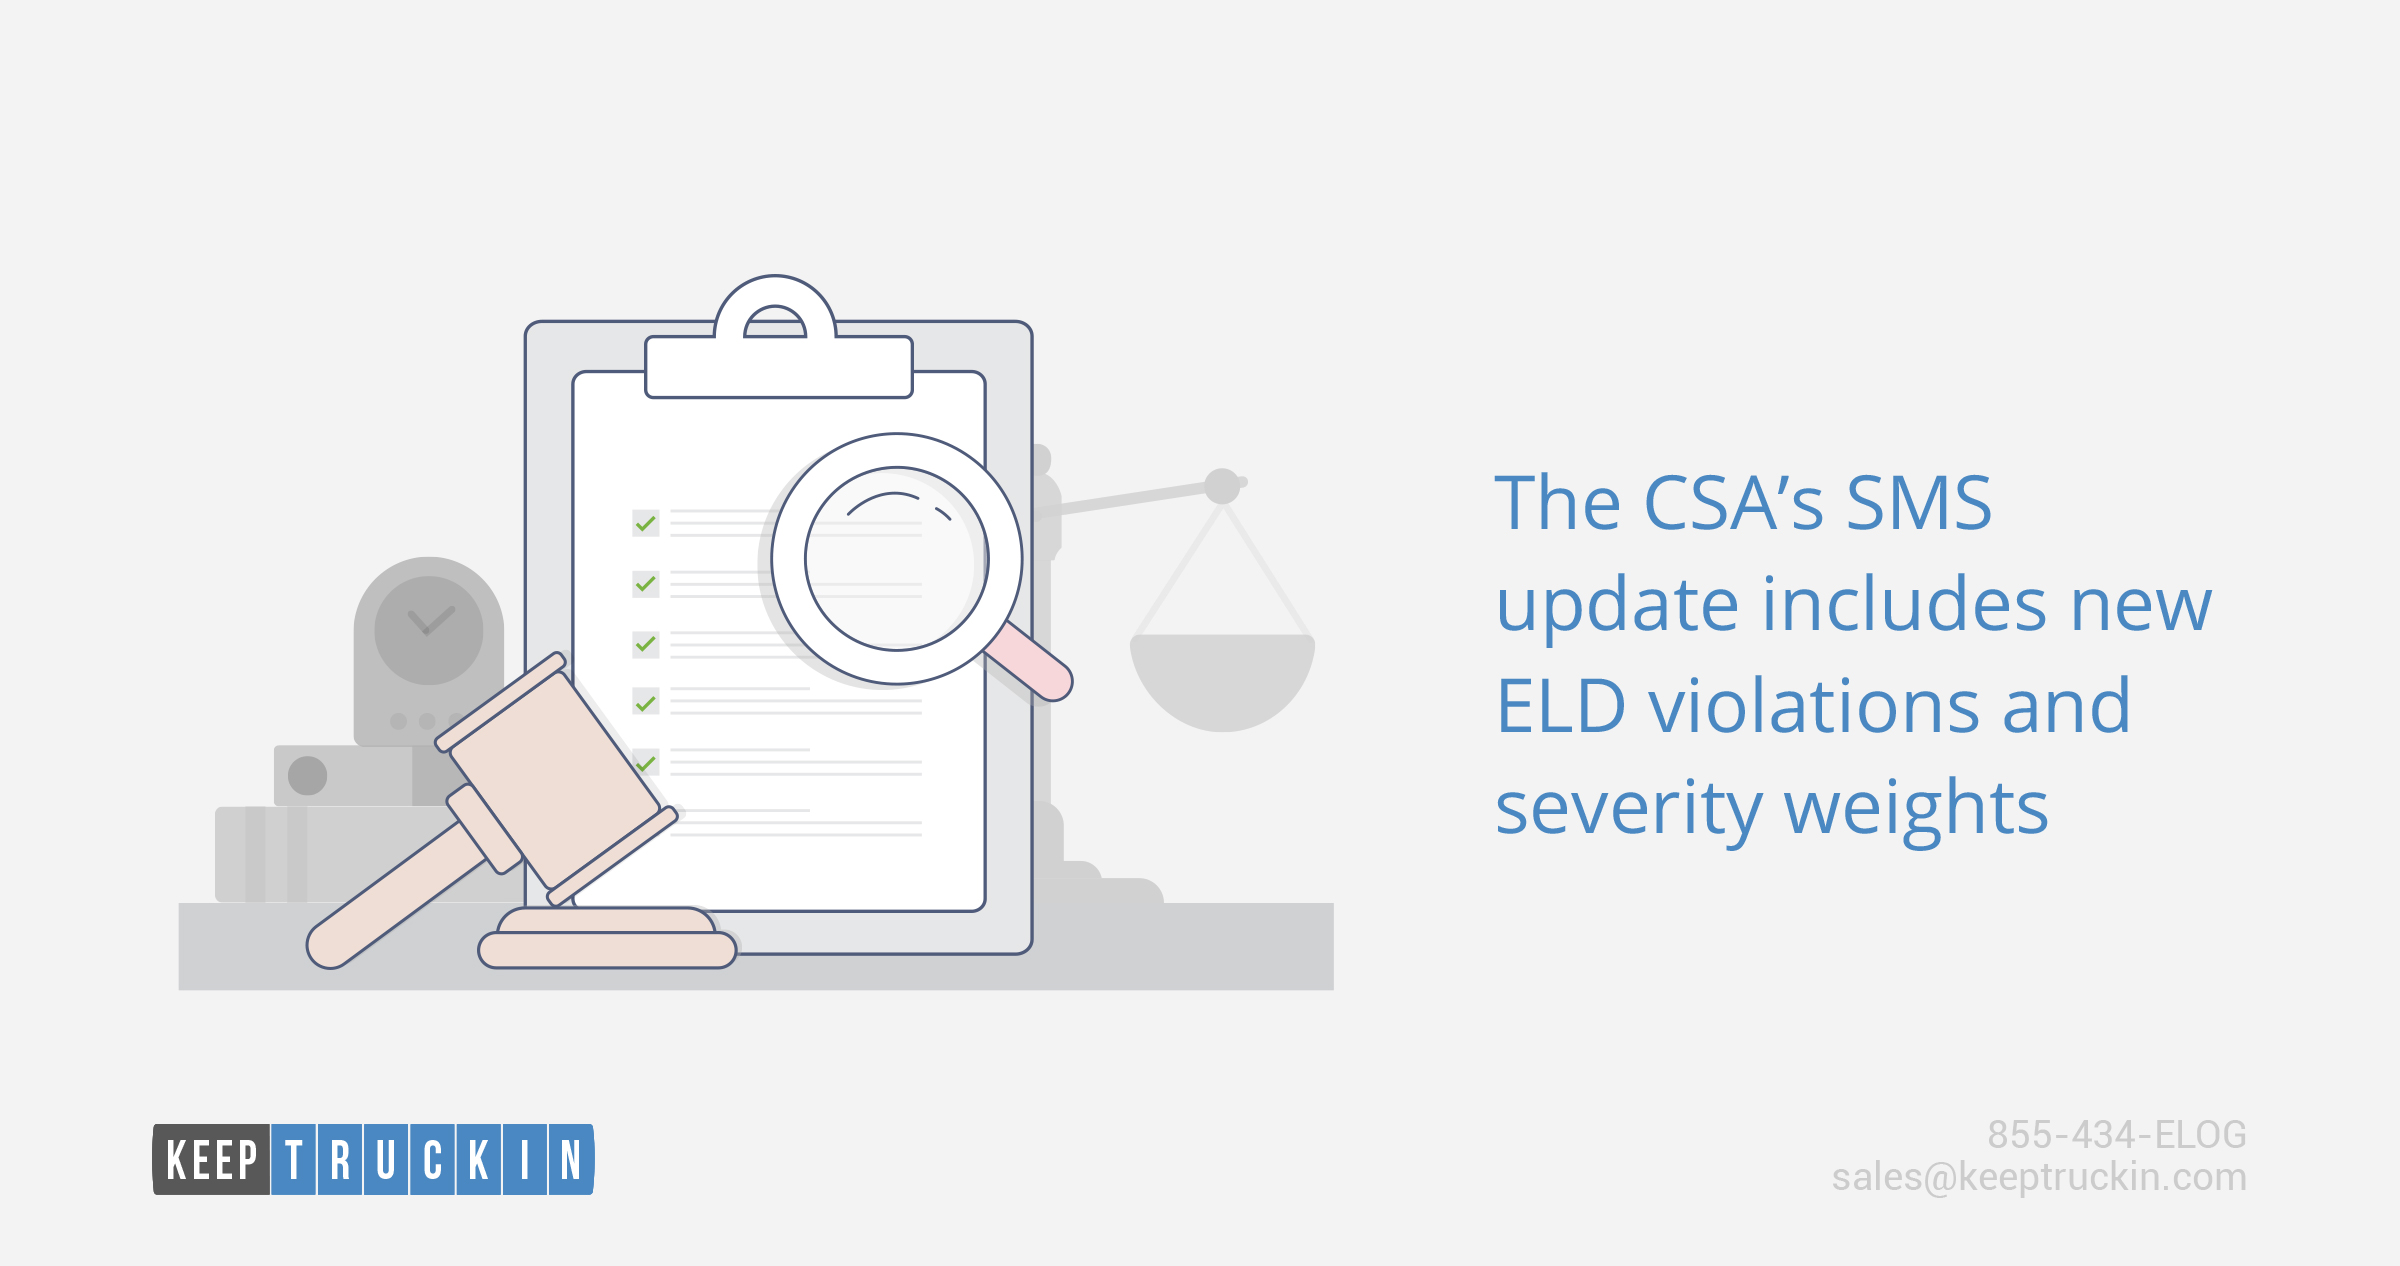 The CSA's SMS update includes new ELD violations and severity weights